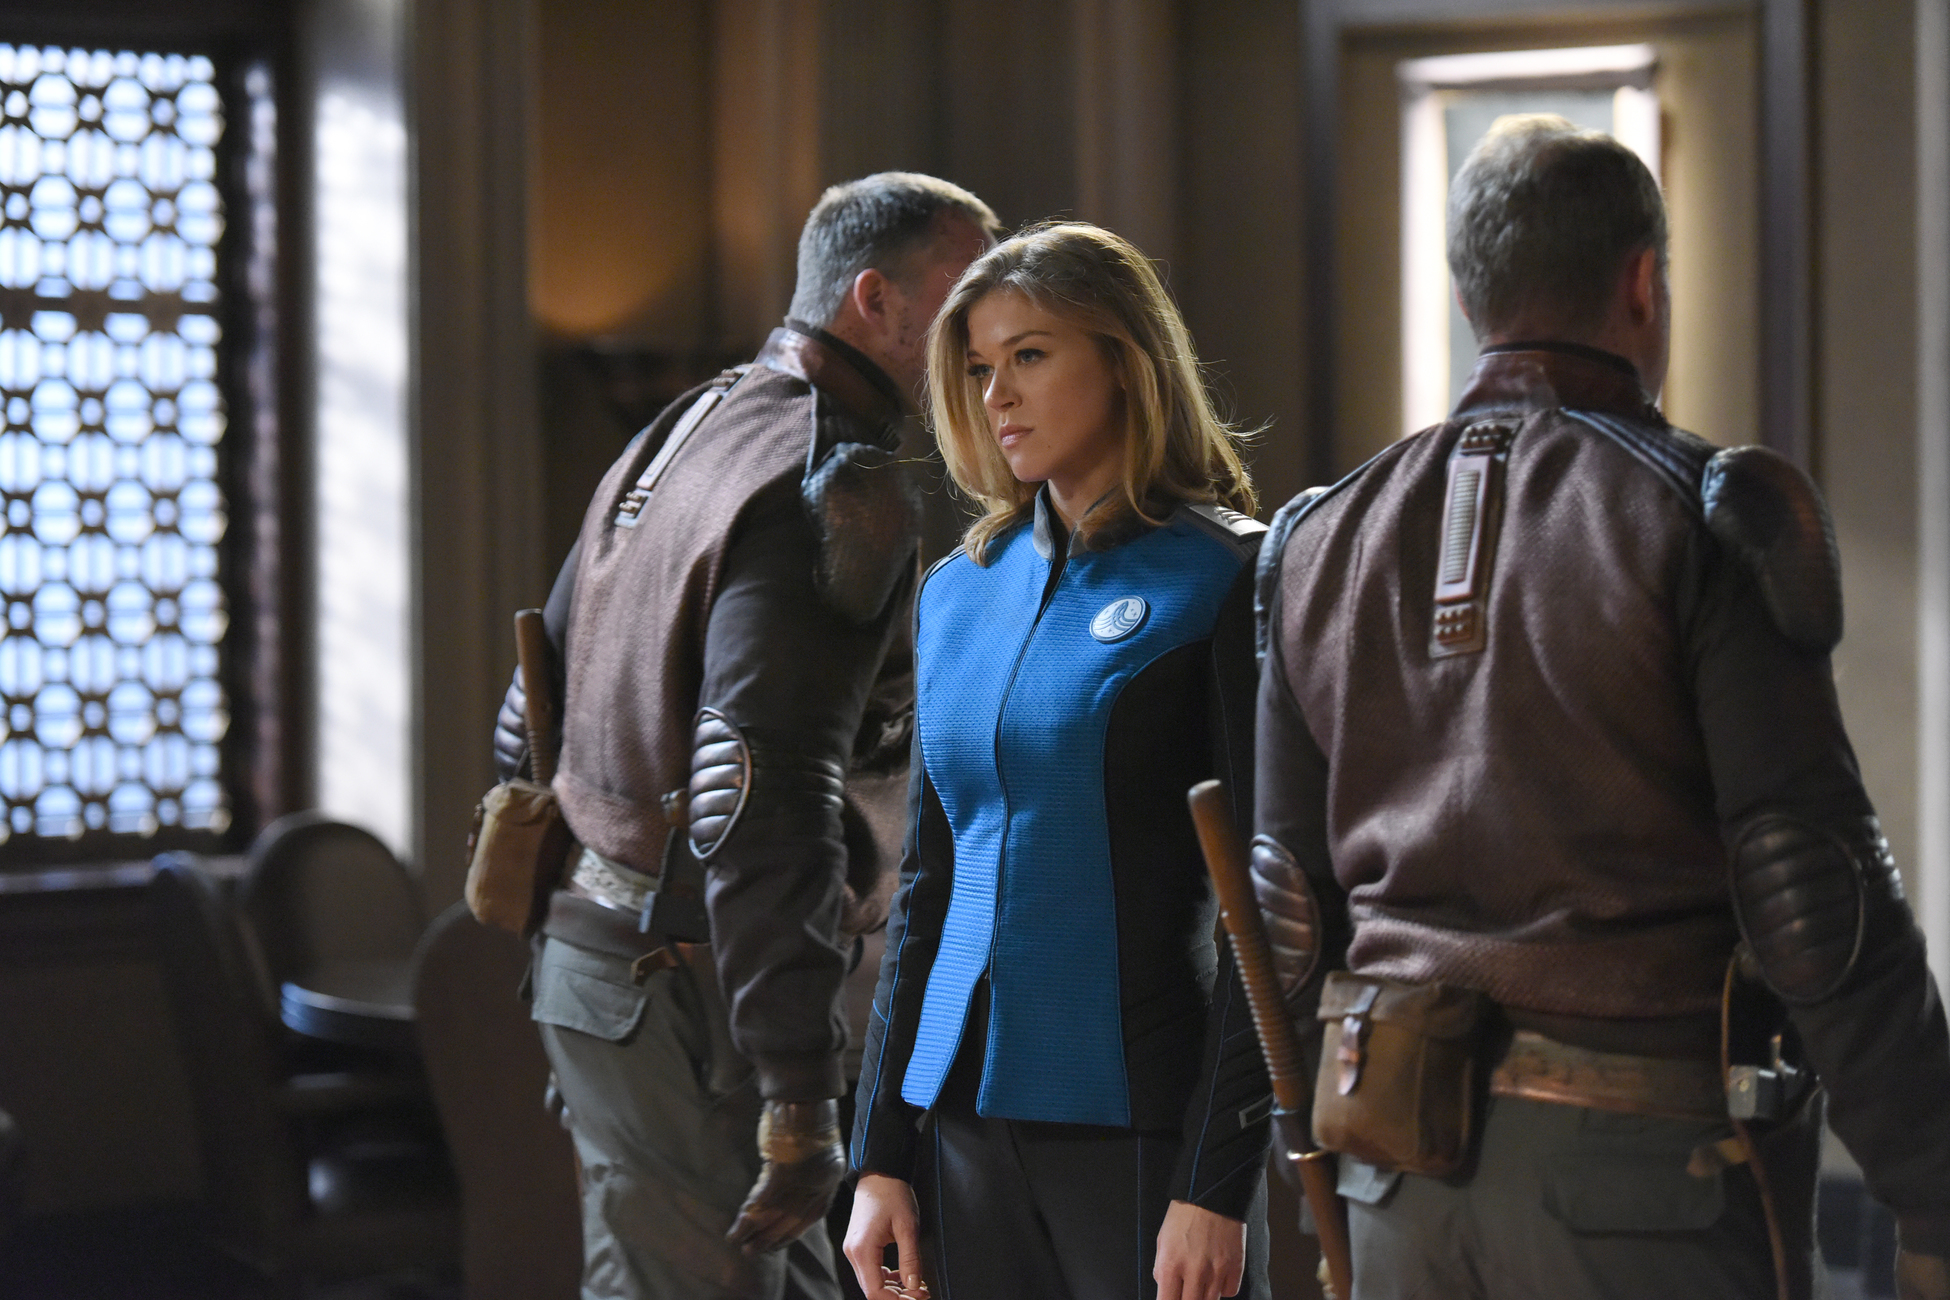 Michael Duisenberg, Adrianne Palicki, and Derek Graf in The Orville (2017)